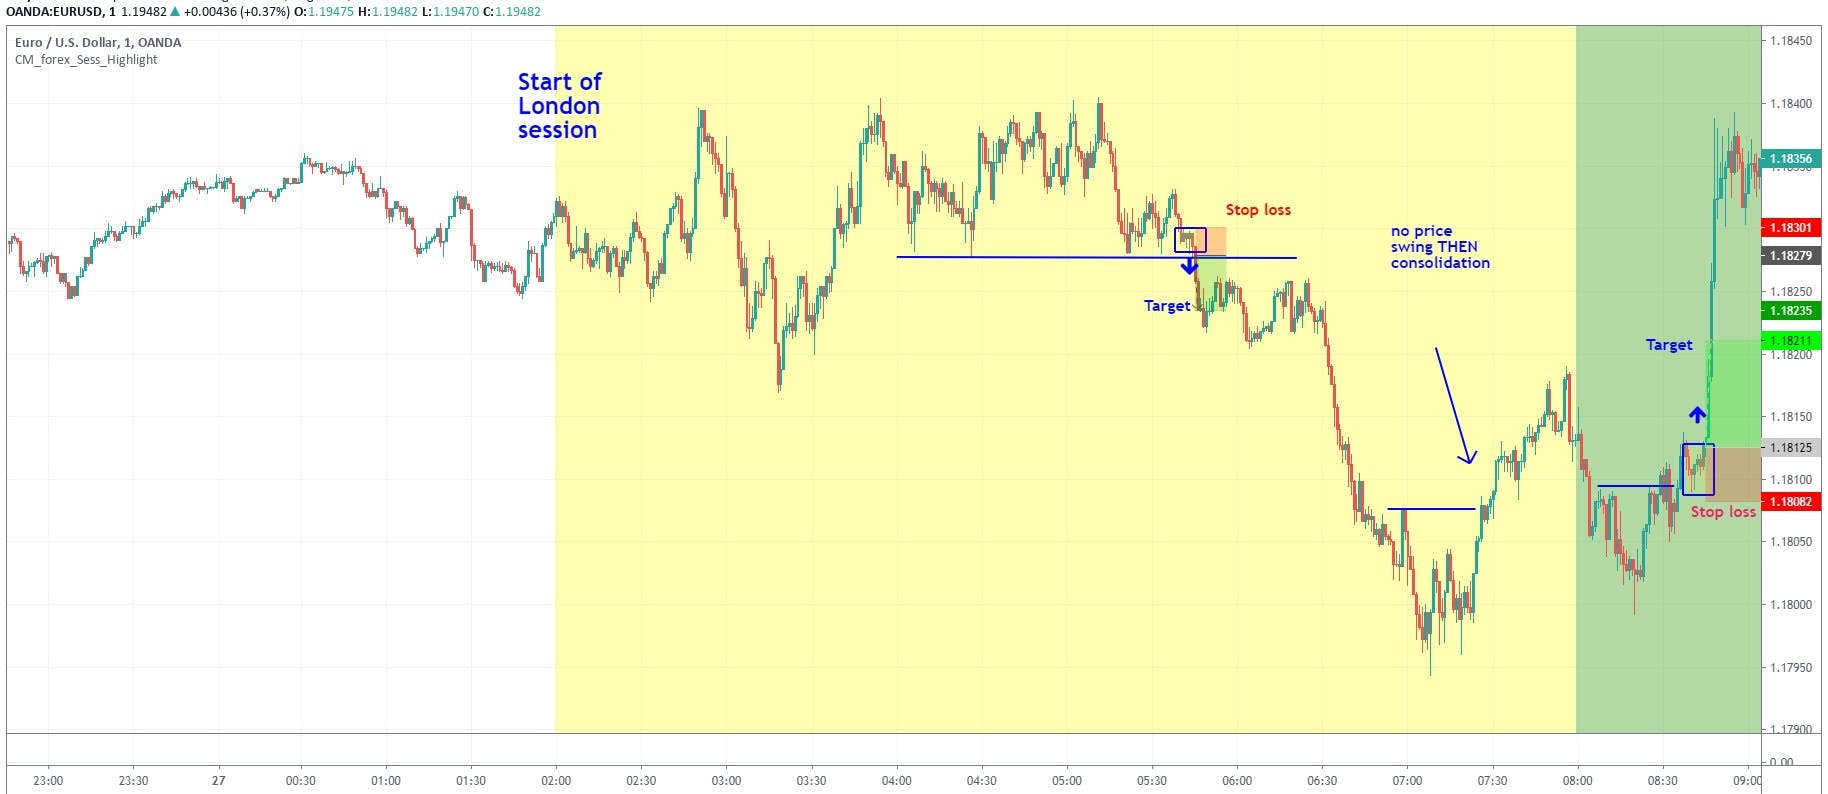 EURUSD technical turnaround day trading strategy on 1-minute chart